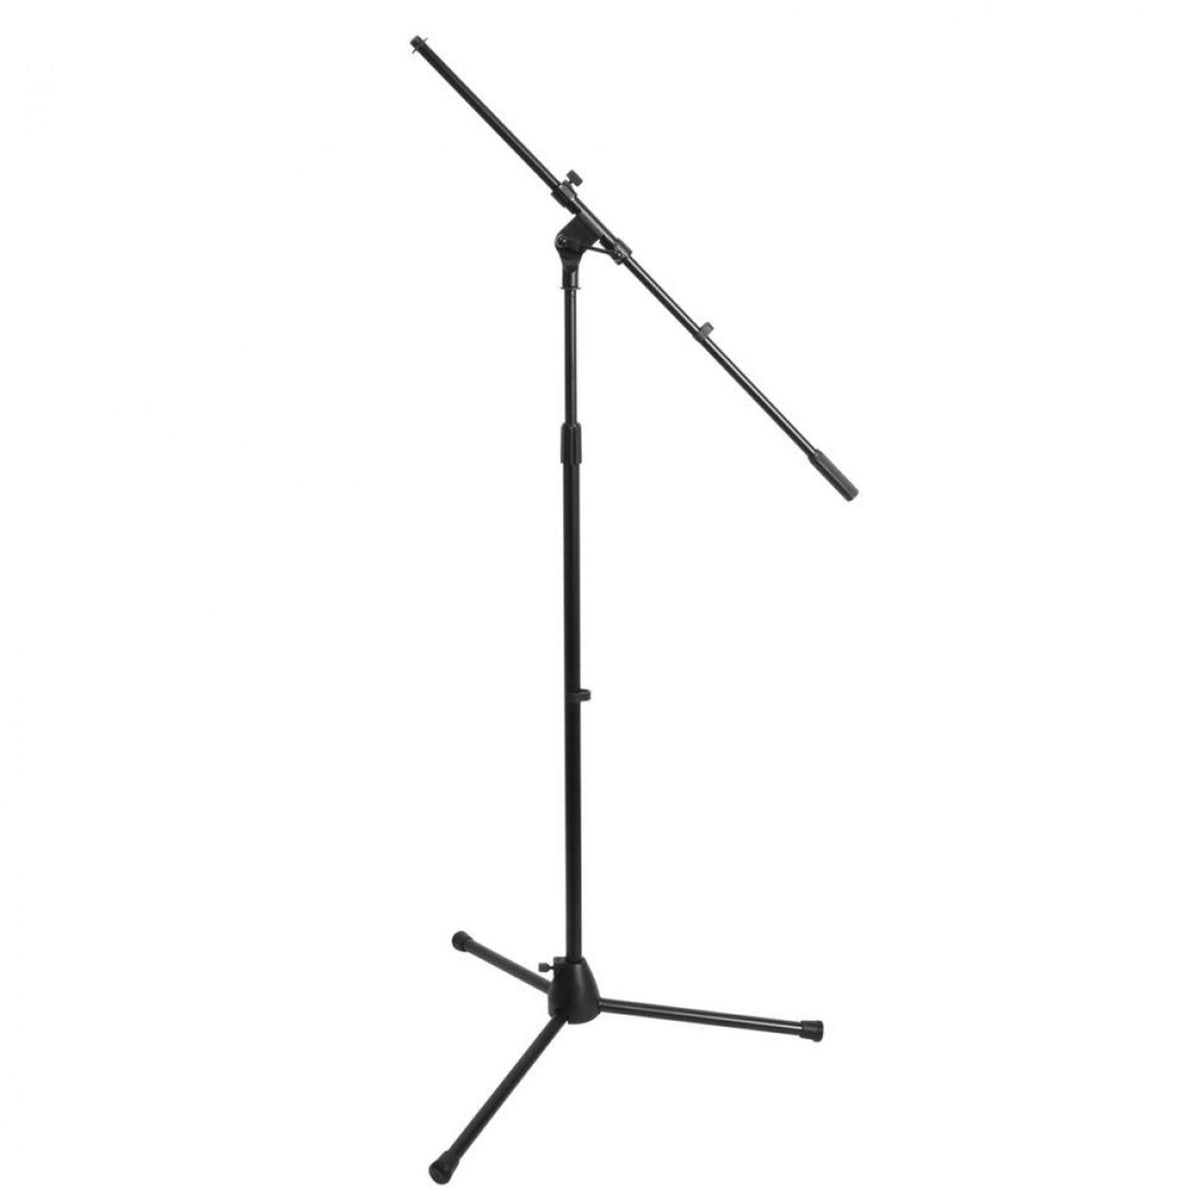 Shure SM58S Microphone Bundle with 20-foot XLR Cable & Stand